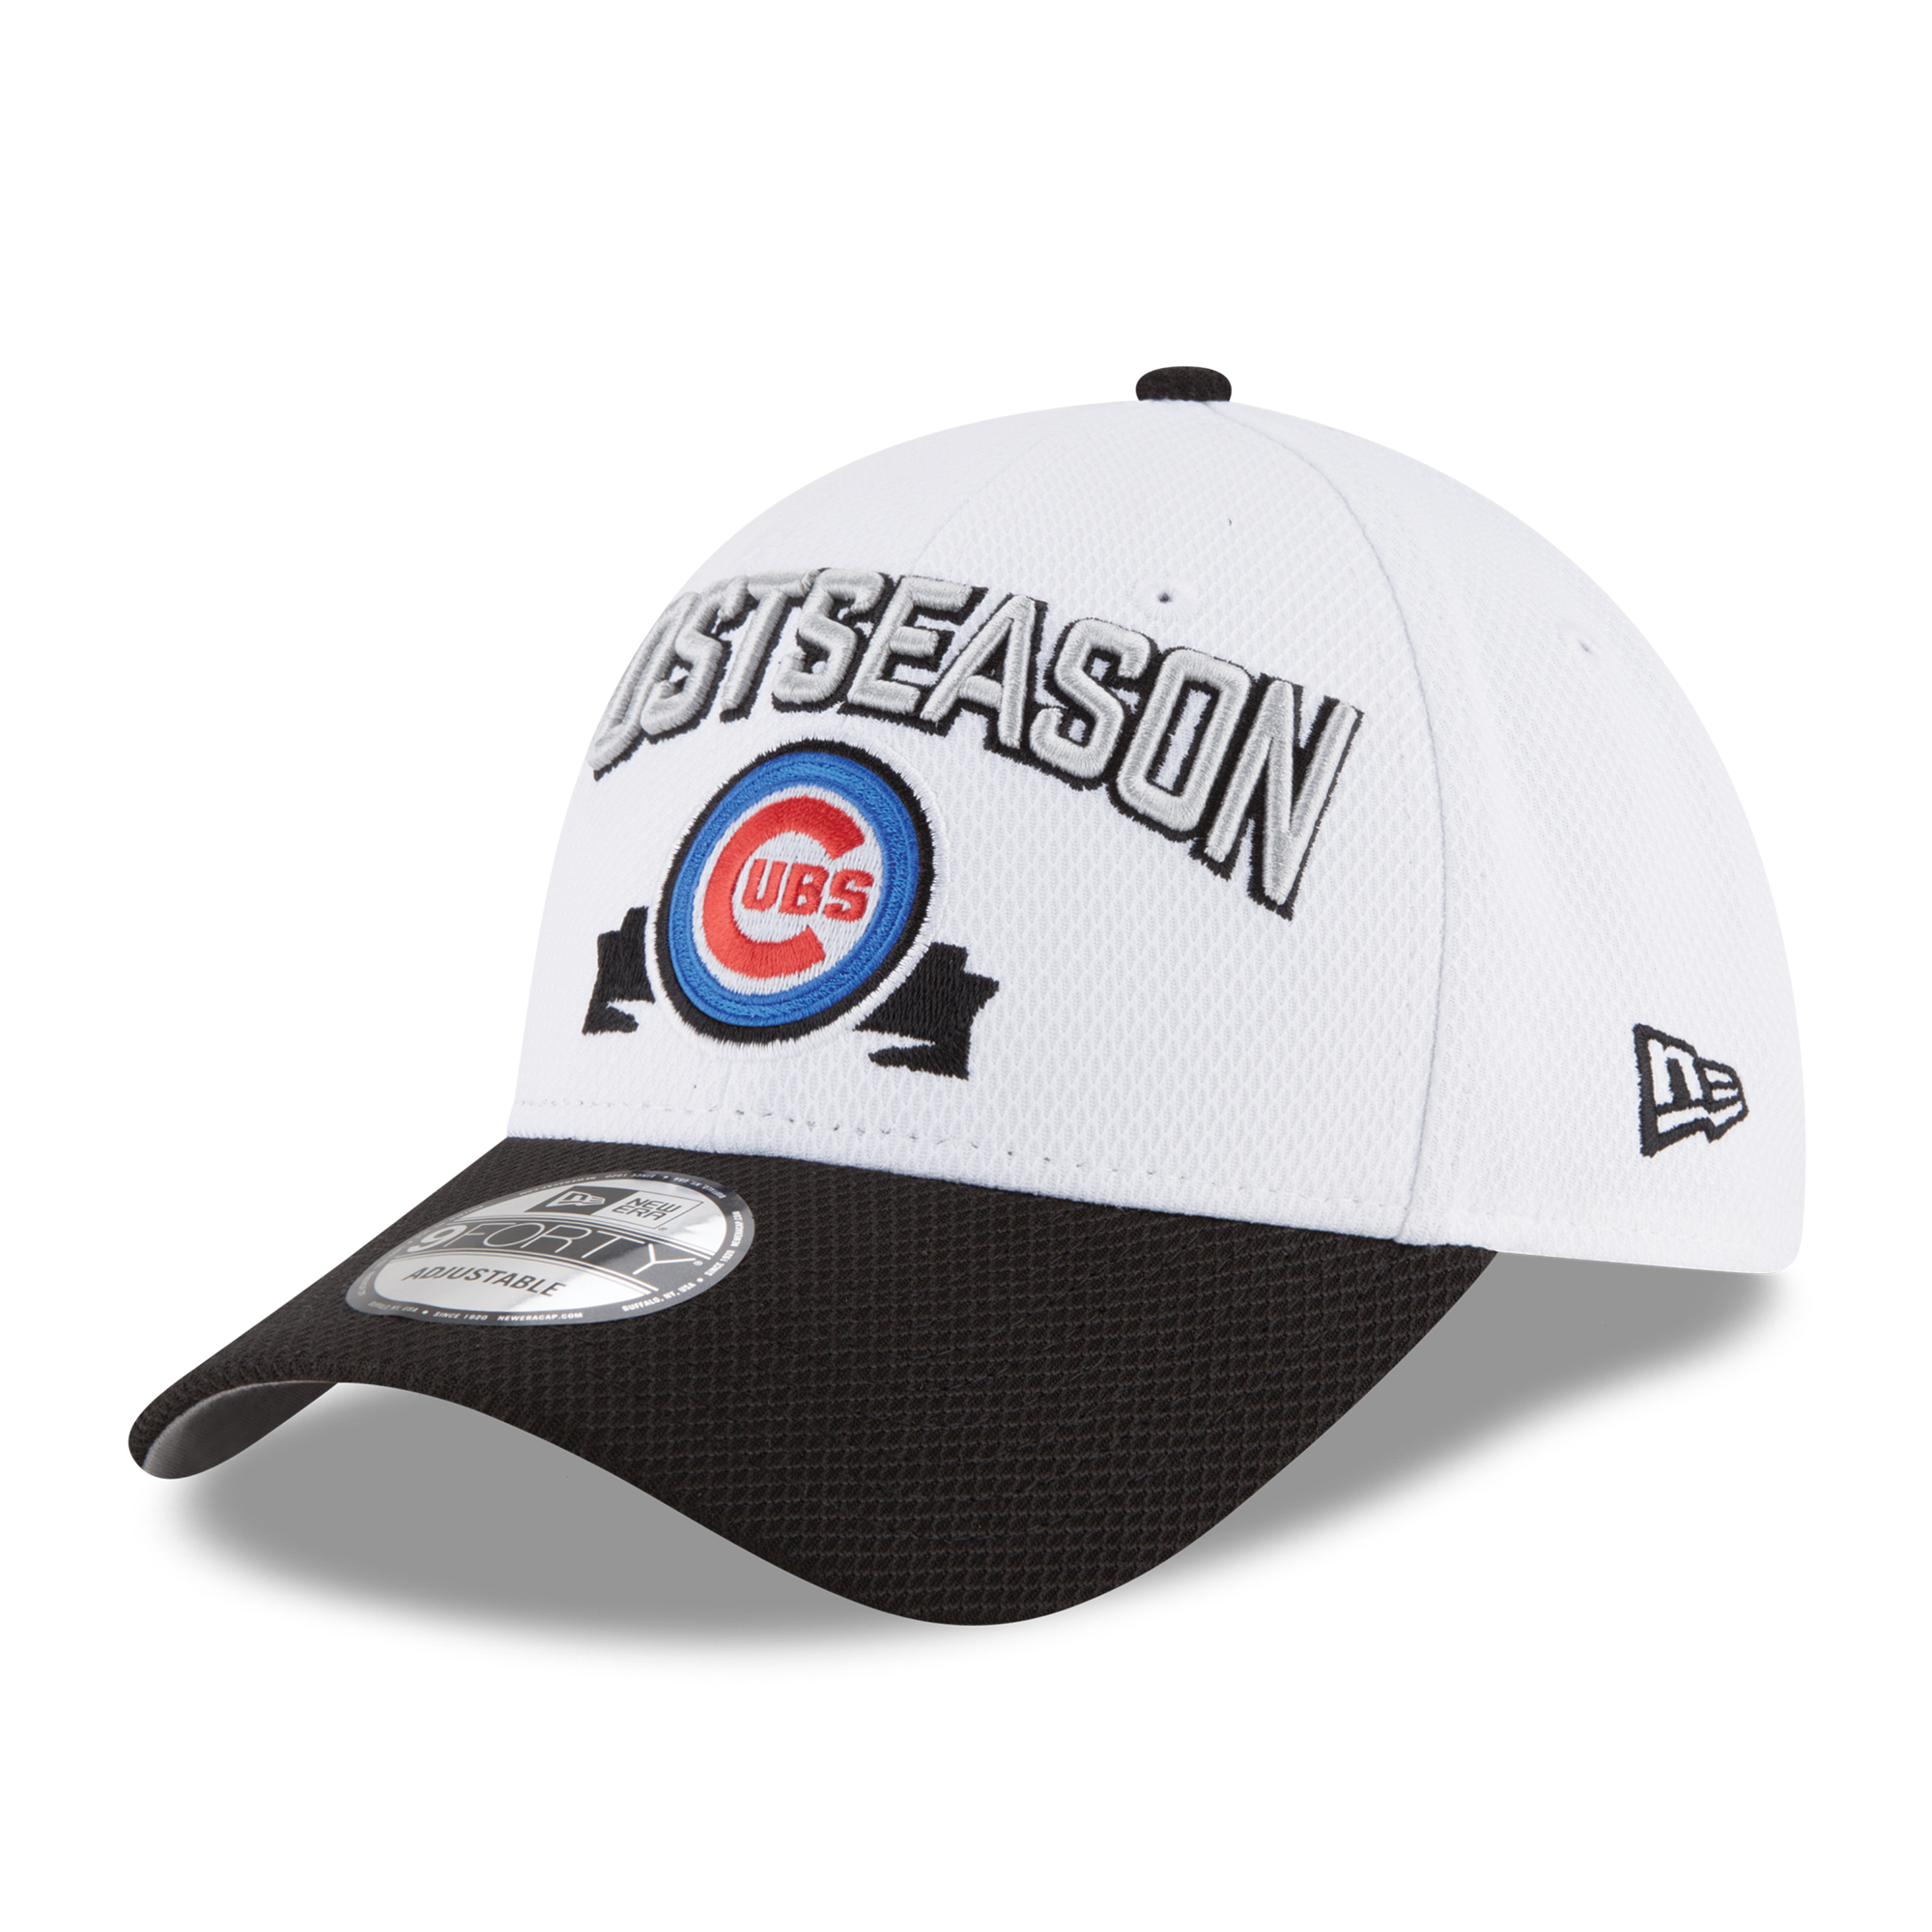 Chicago Cubs New Era 2016 Division Series Winner Locker Room 9FORTY Adjustable Hat - White - OSFA